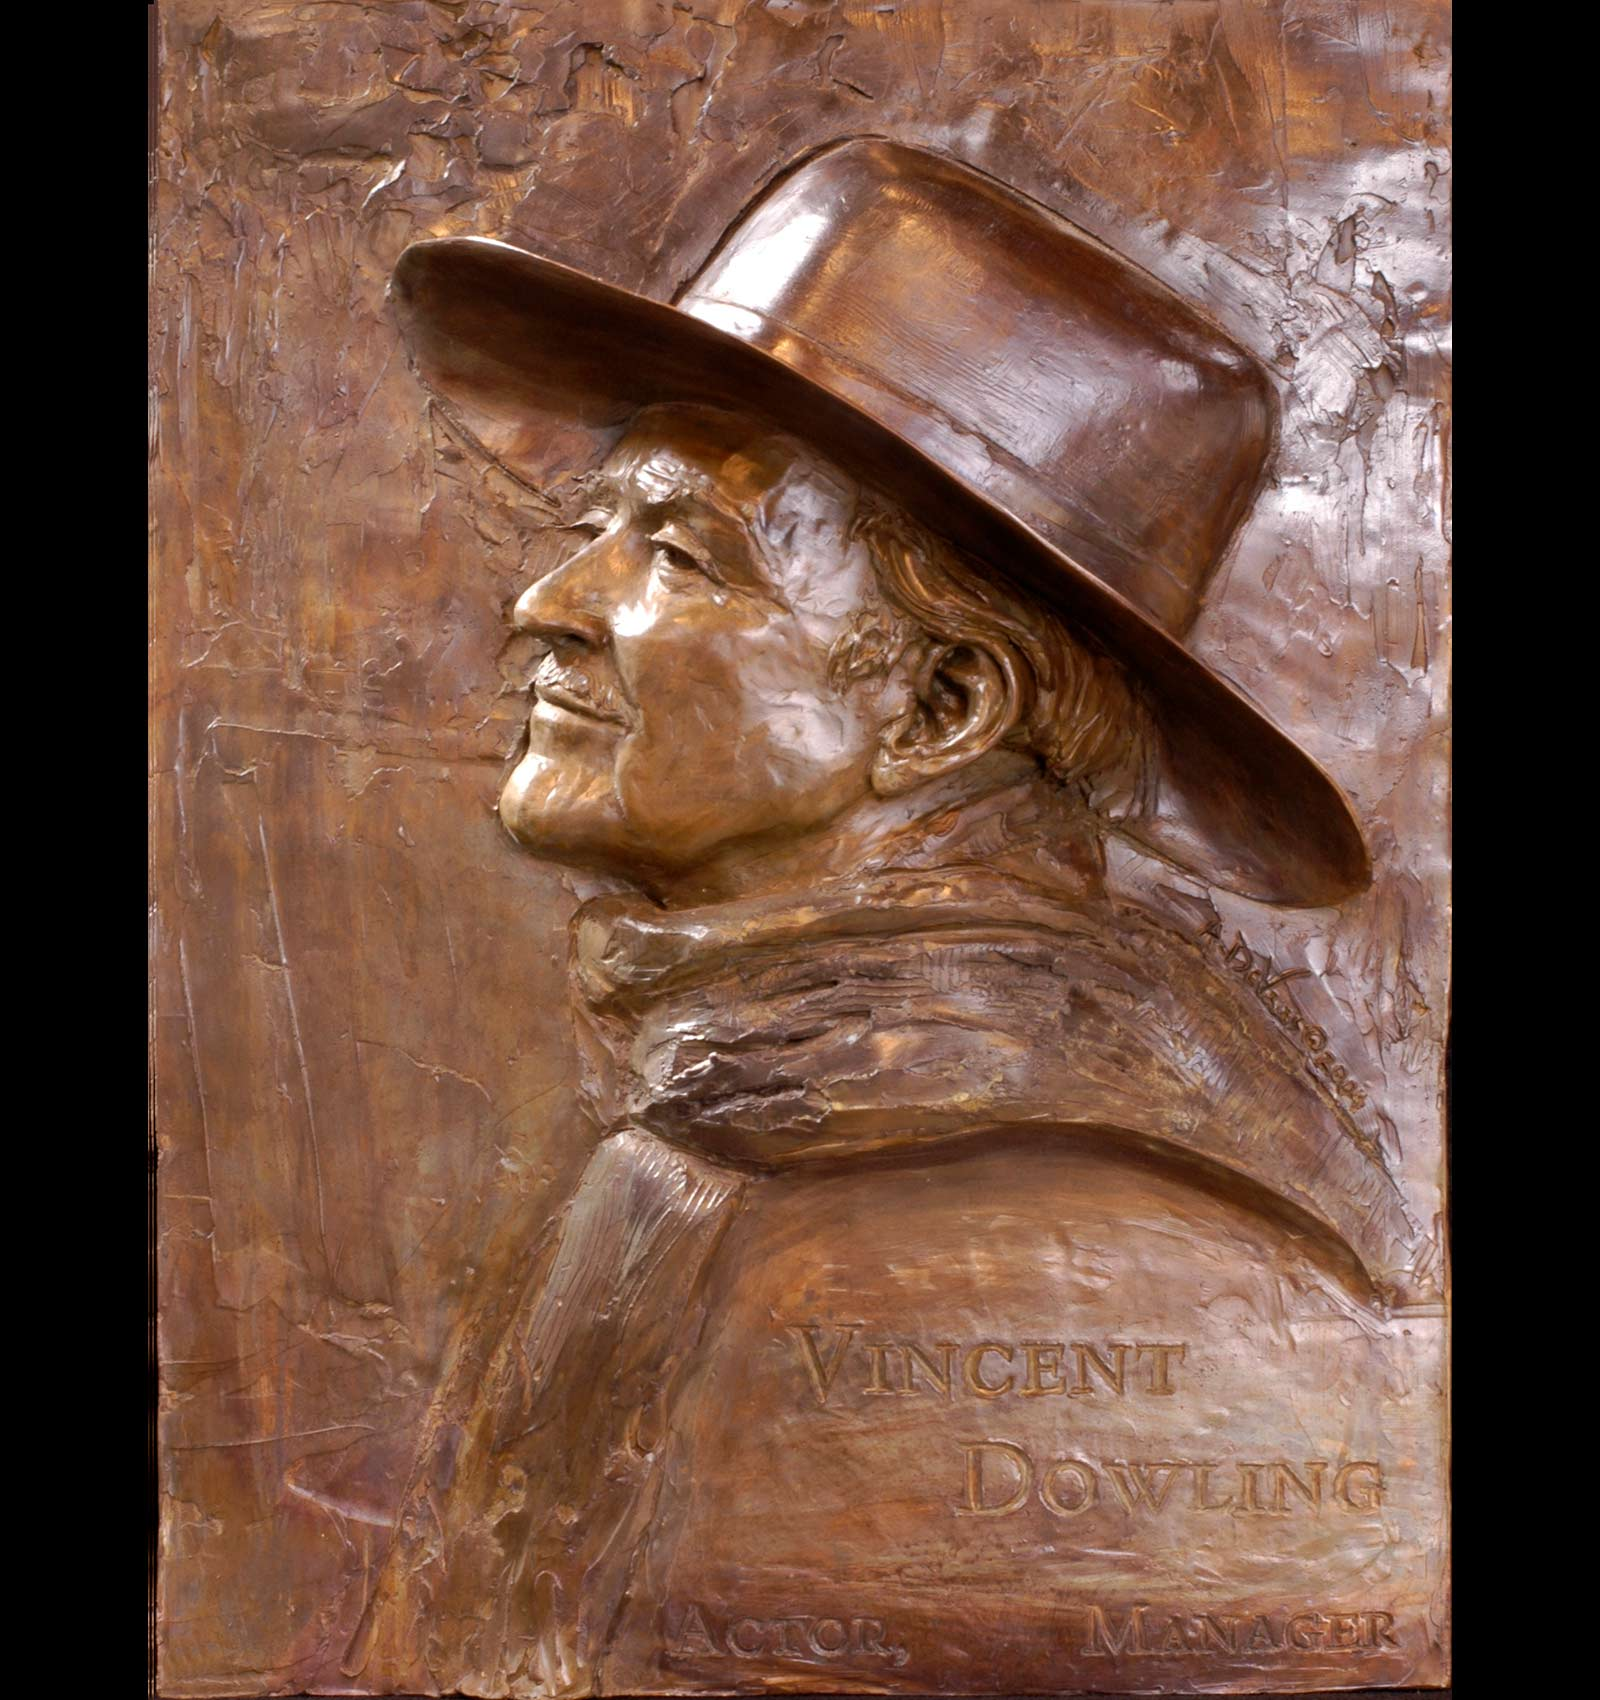 Oortrait of Vincent Dowling a Bronze figurative sculpture relief portrait of the actor and director Vincent Dowling by Sculptor Andrew DeVries installed at the Abby Theatre in Dublin